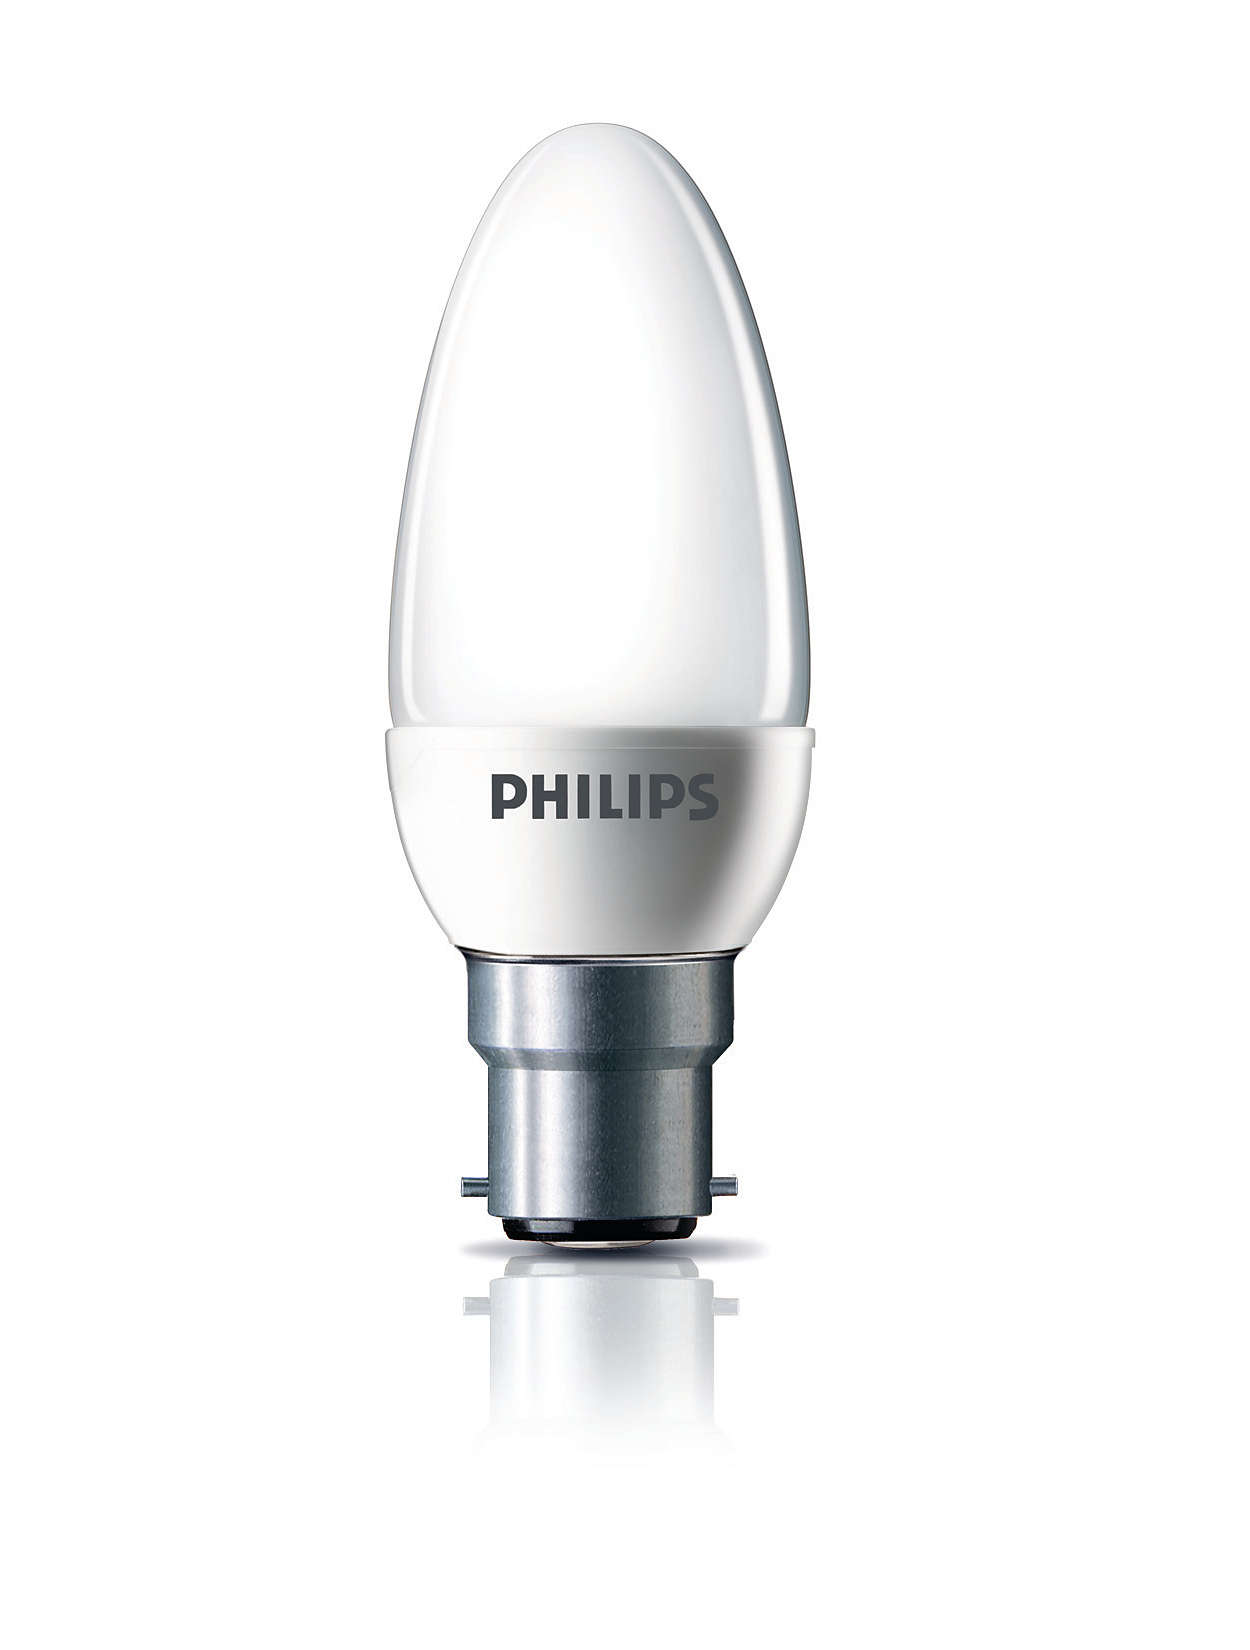 Energy-saving bulb in a classic shape